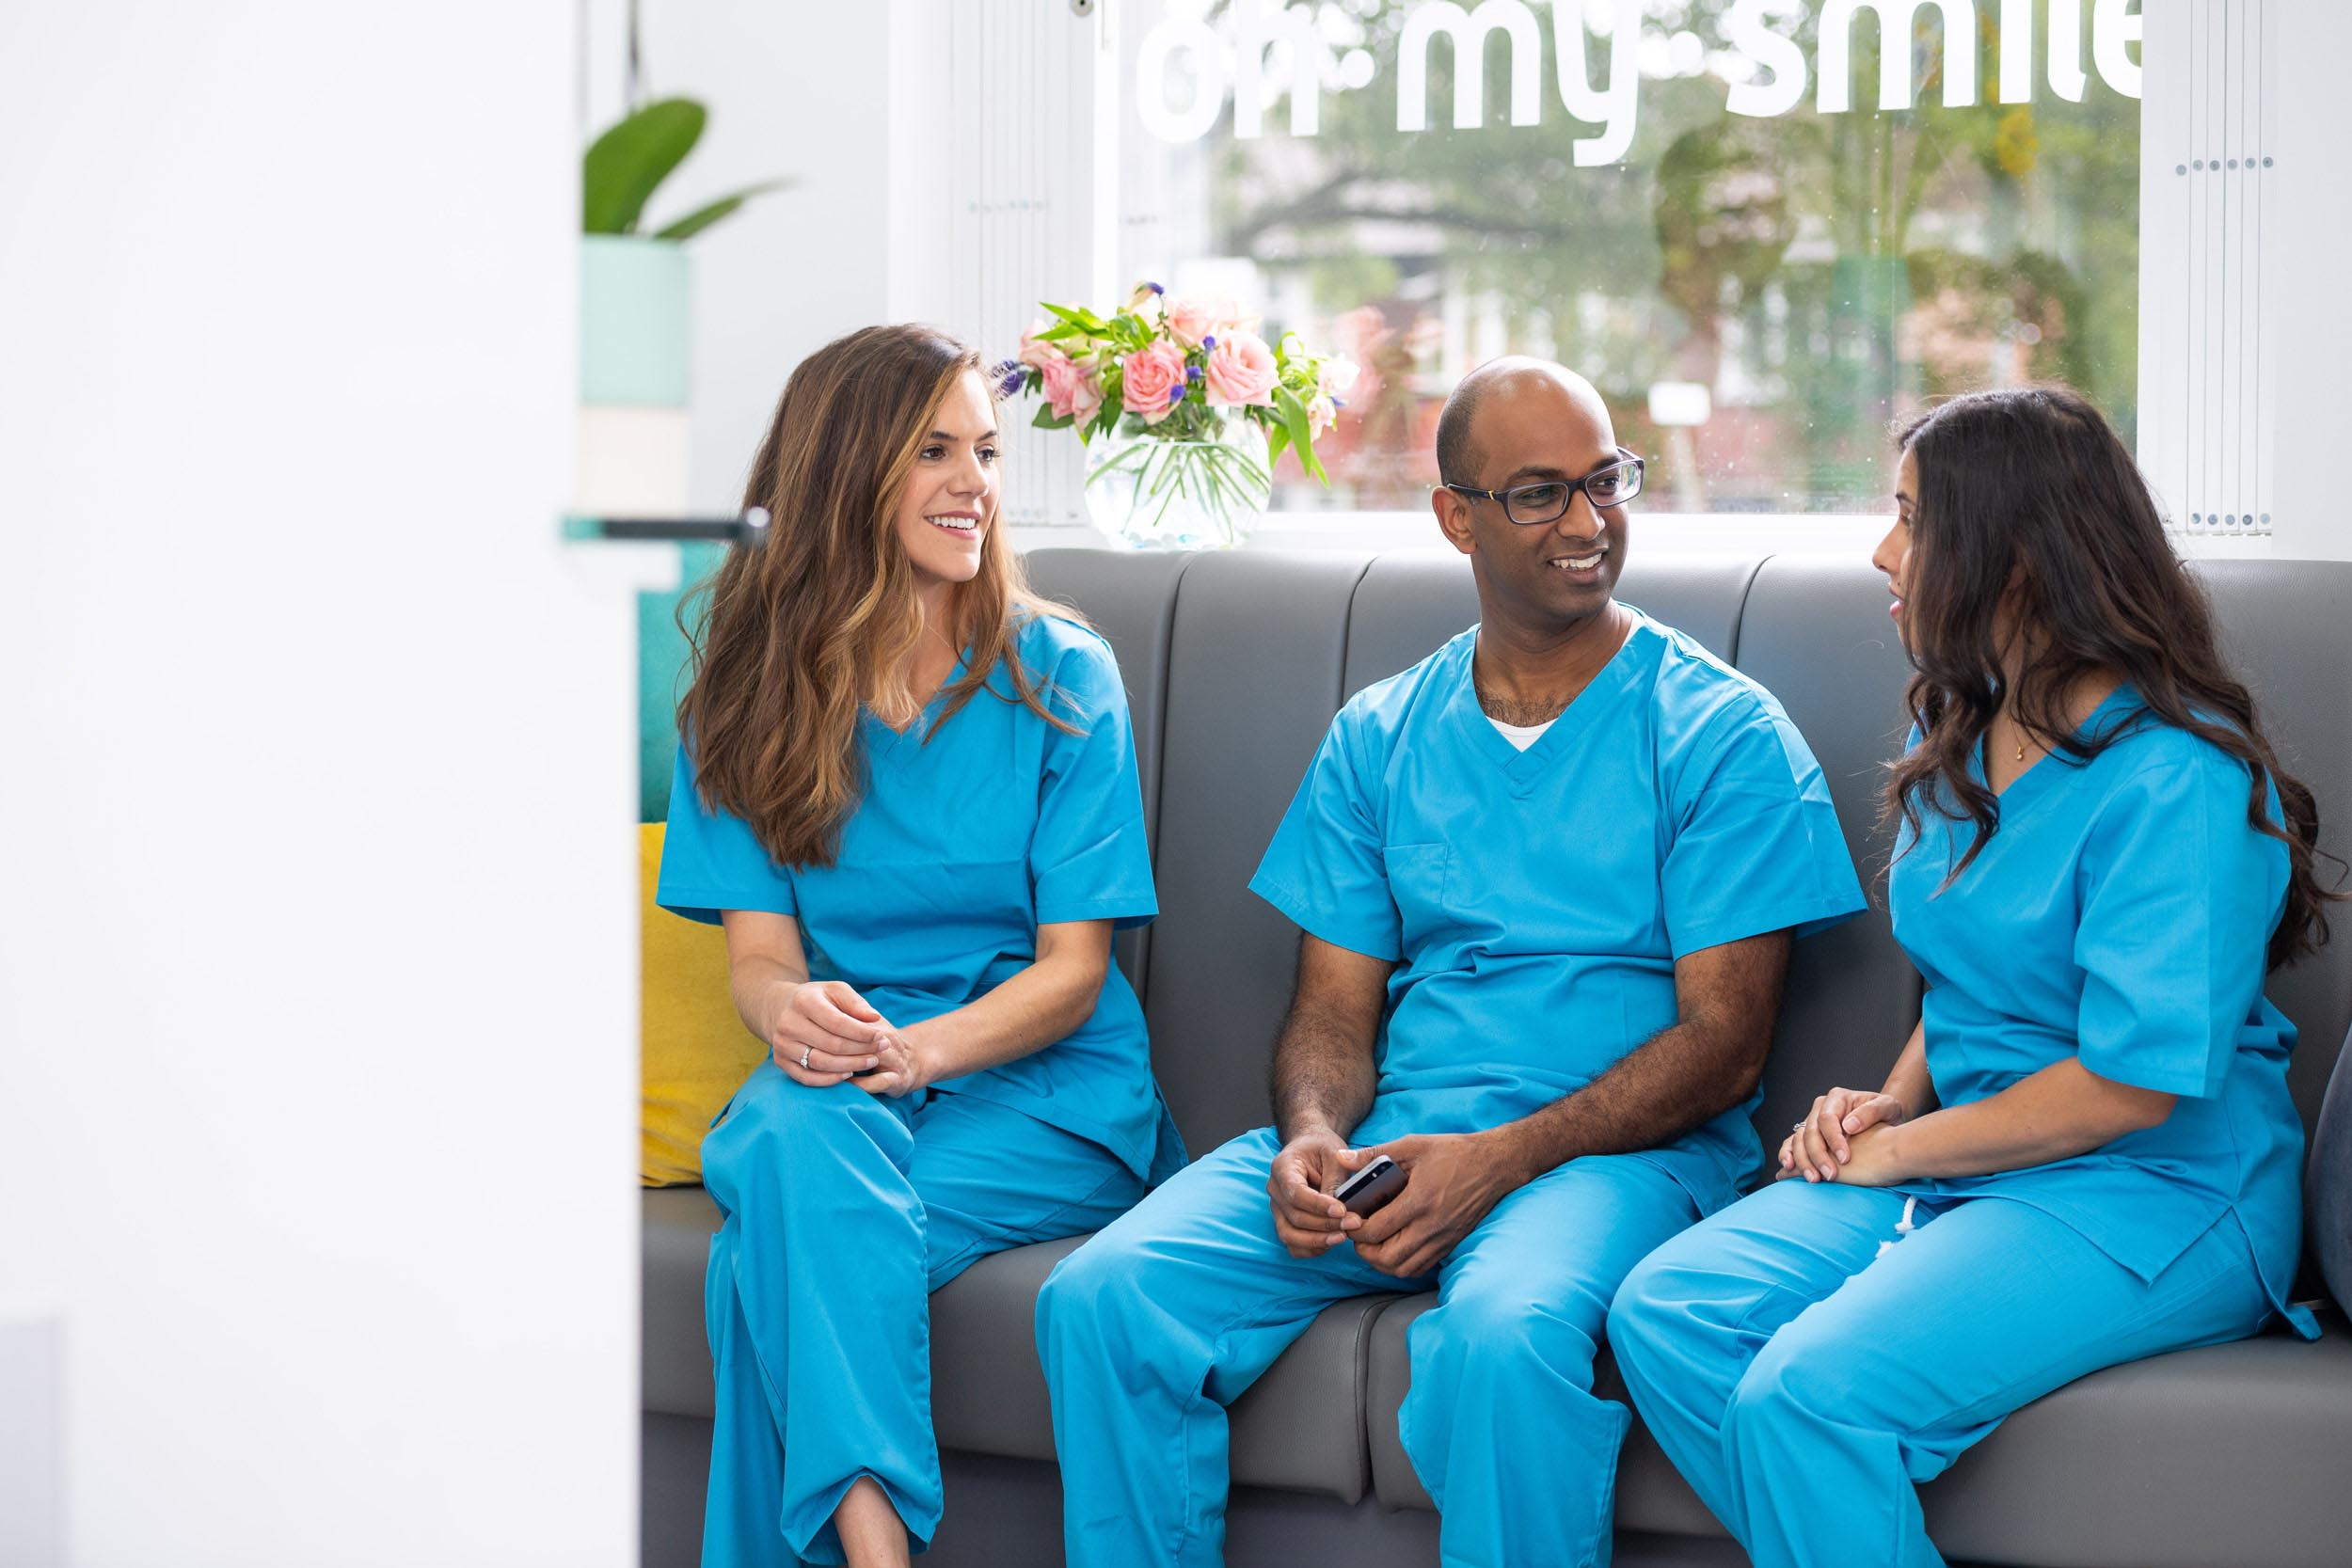 Dentists hold an impromptu meeting in a waiting room